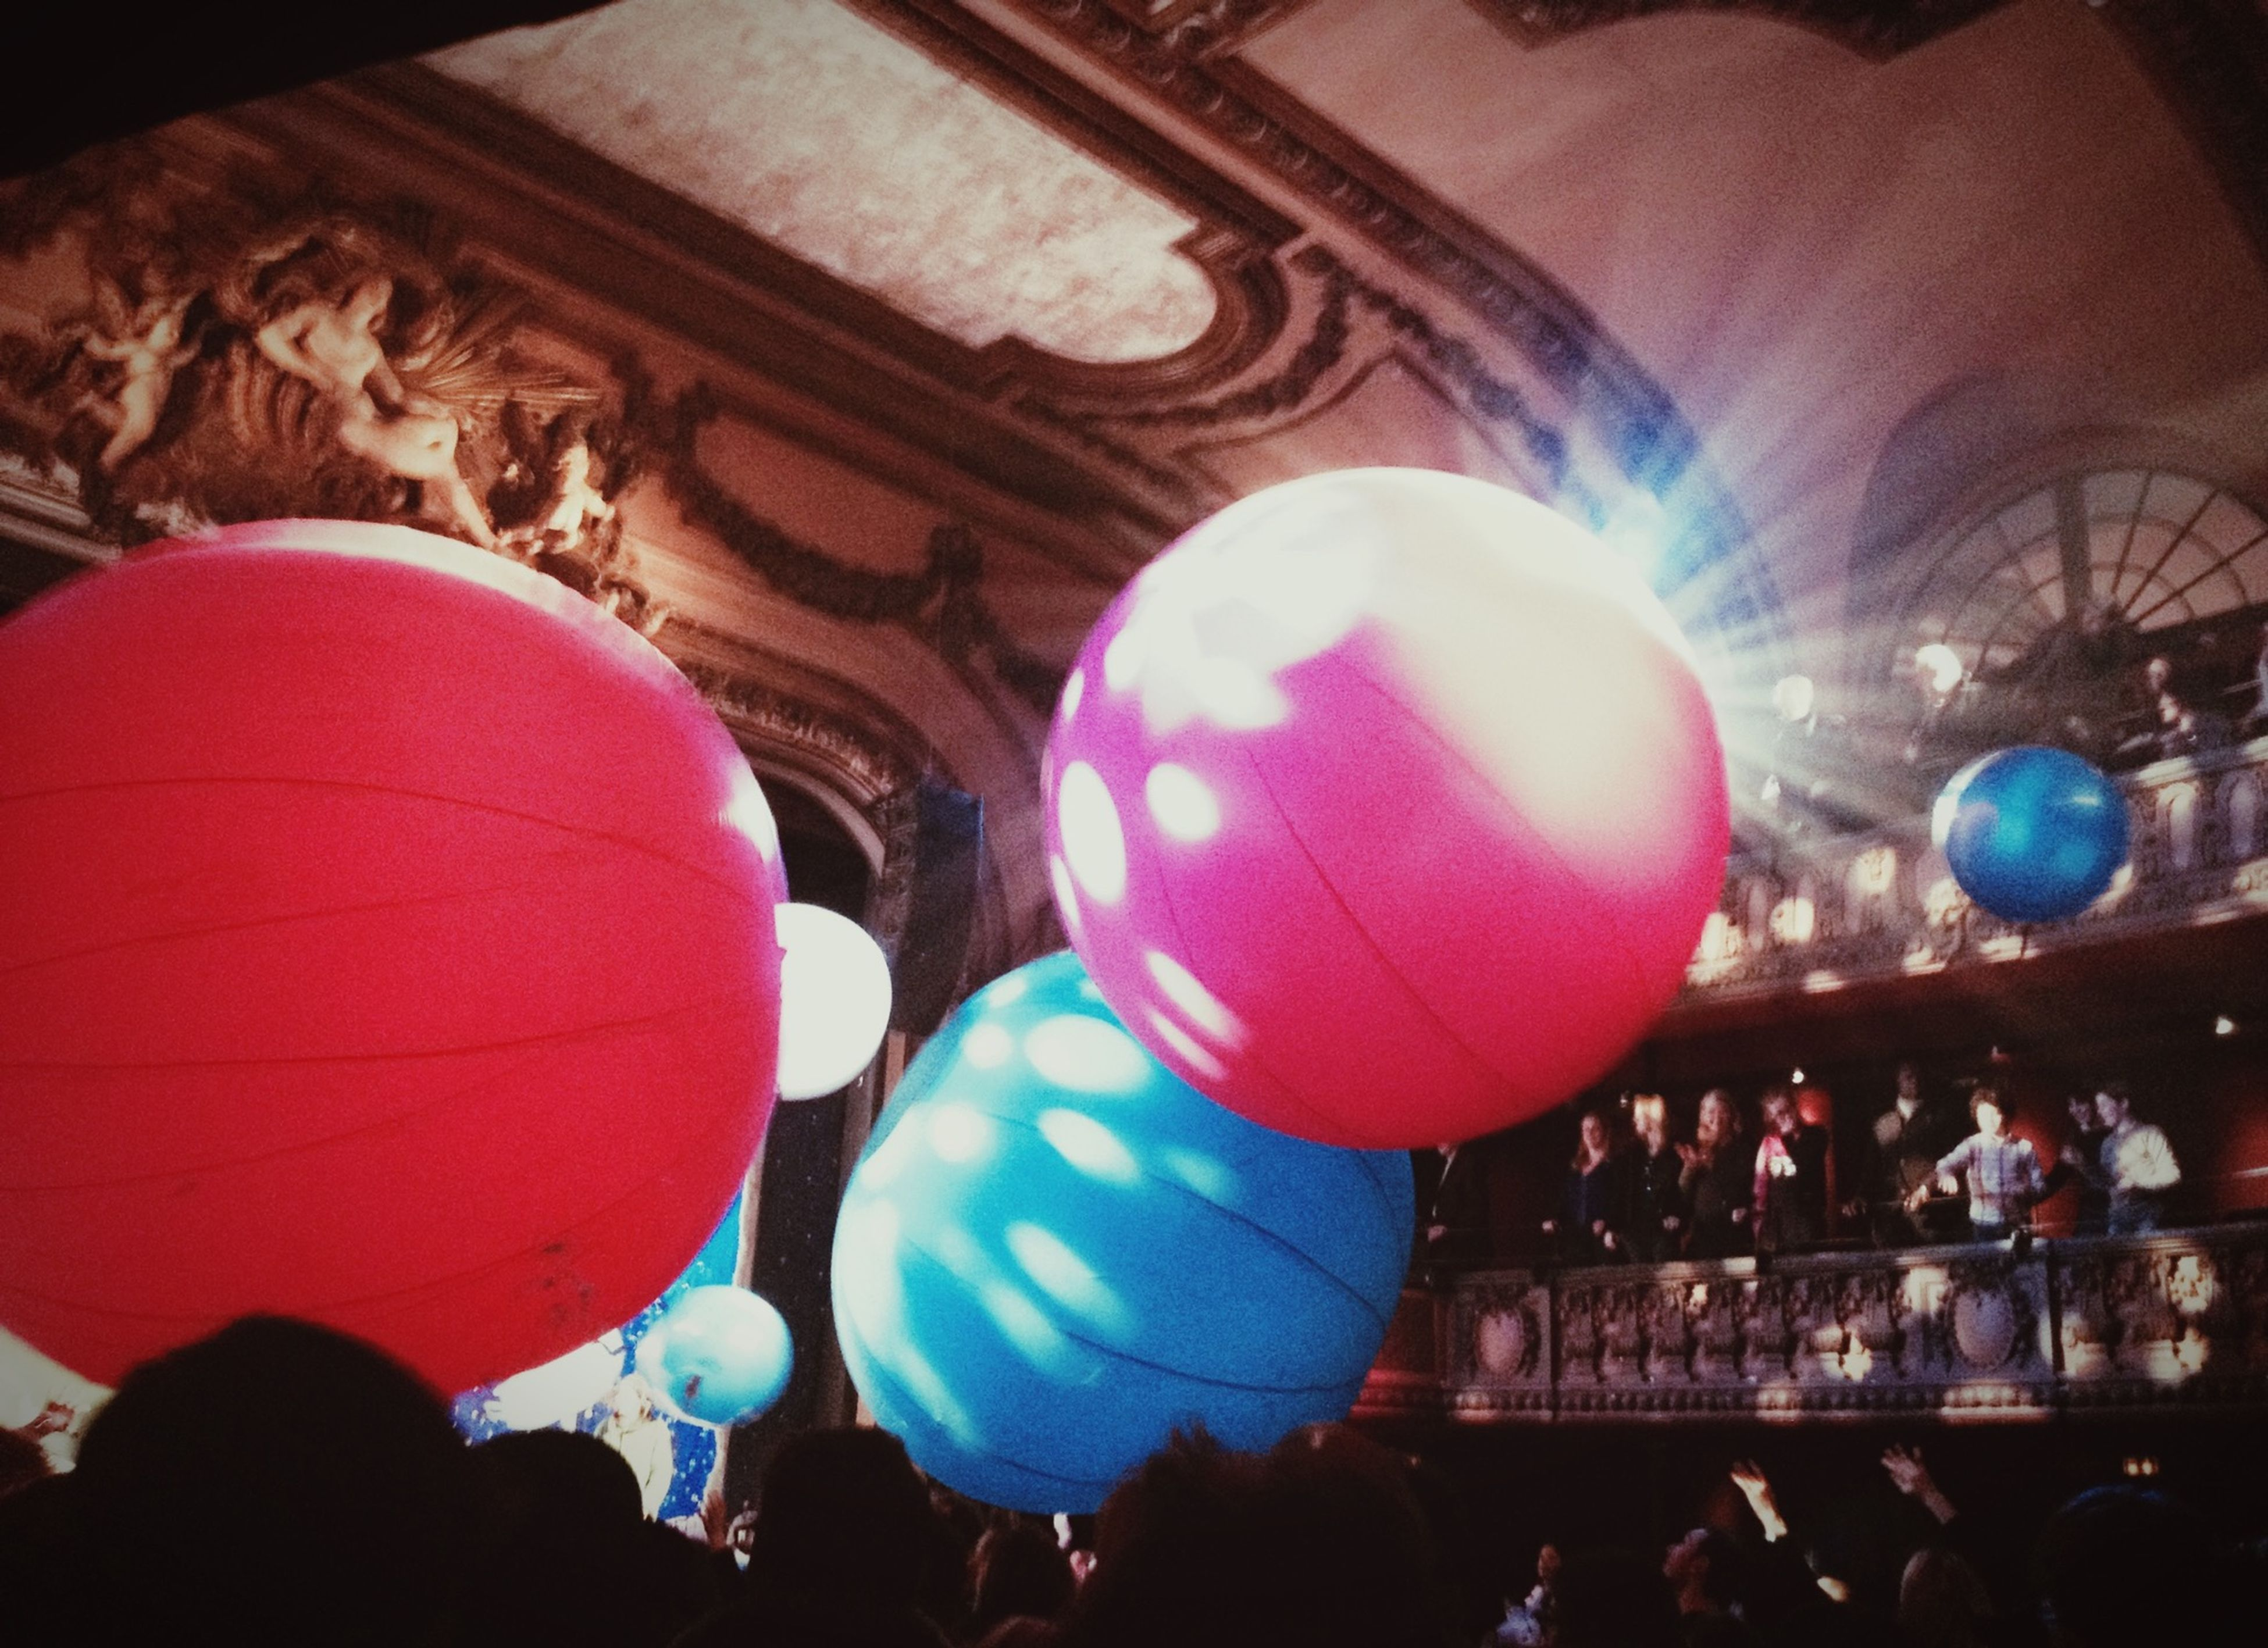 celebration, illuminated, balloon, indoors, decoration, multi colored, lighting equipment, tradition, leisure activity, hanging, cultures, lantern, traditional festival, night, lifestyles, low angle view, sphere, large group of people, enjoyment